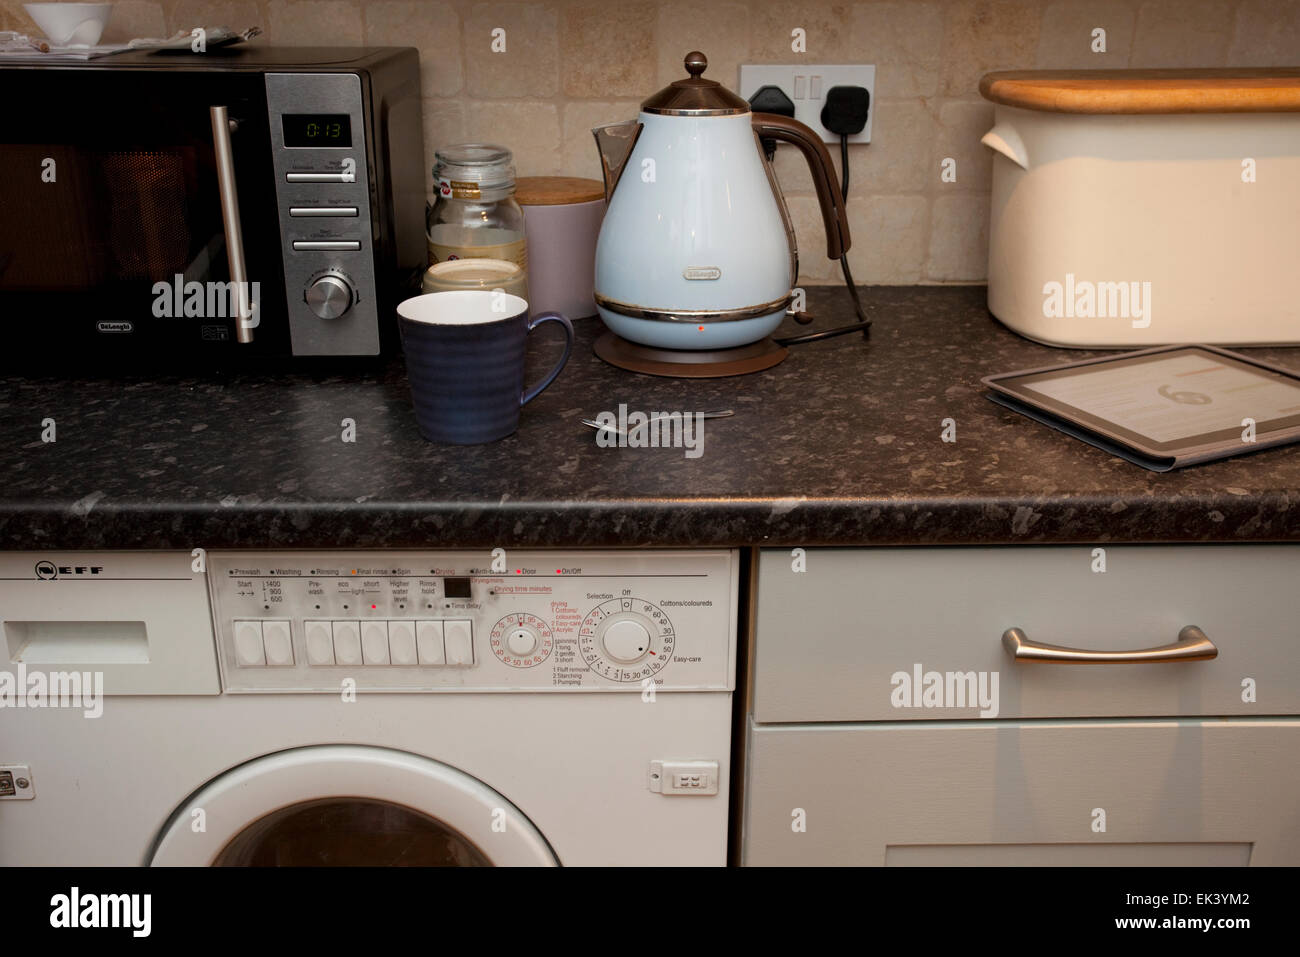 All appliances on kitchen worktop being used at once Stock Photo